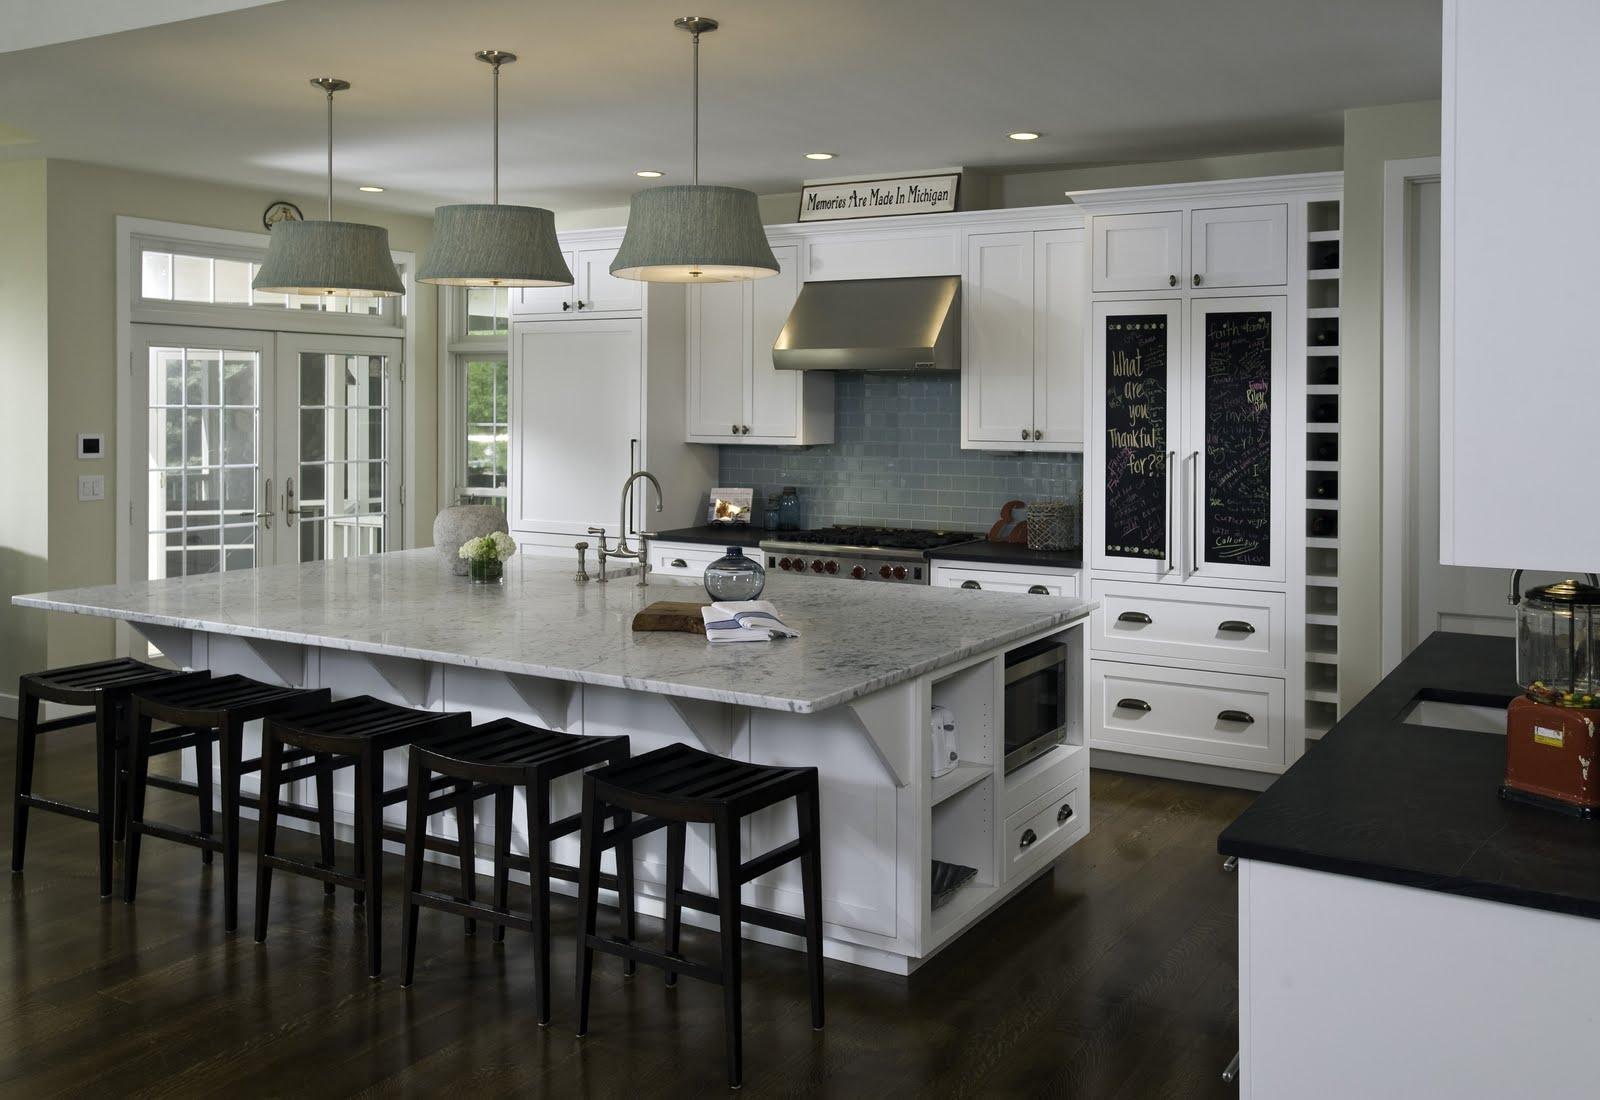 Large Kitchen Island Designs And Plans: Large Kitchen Islands With Seating And Storage That Will